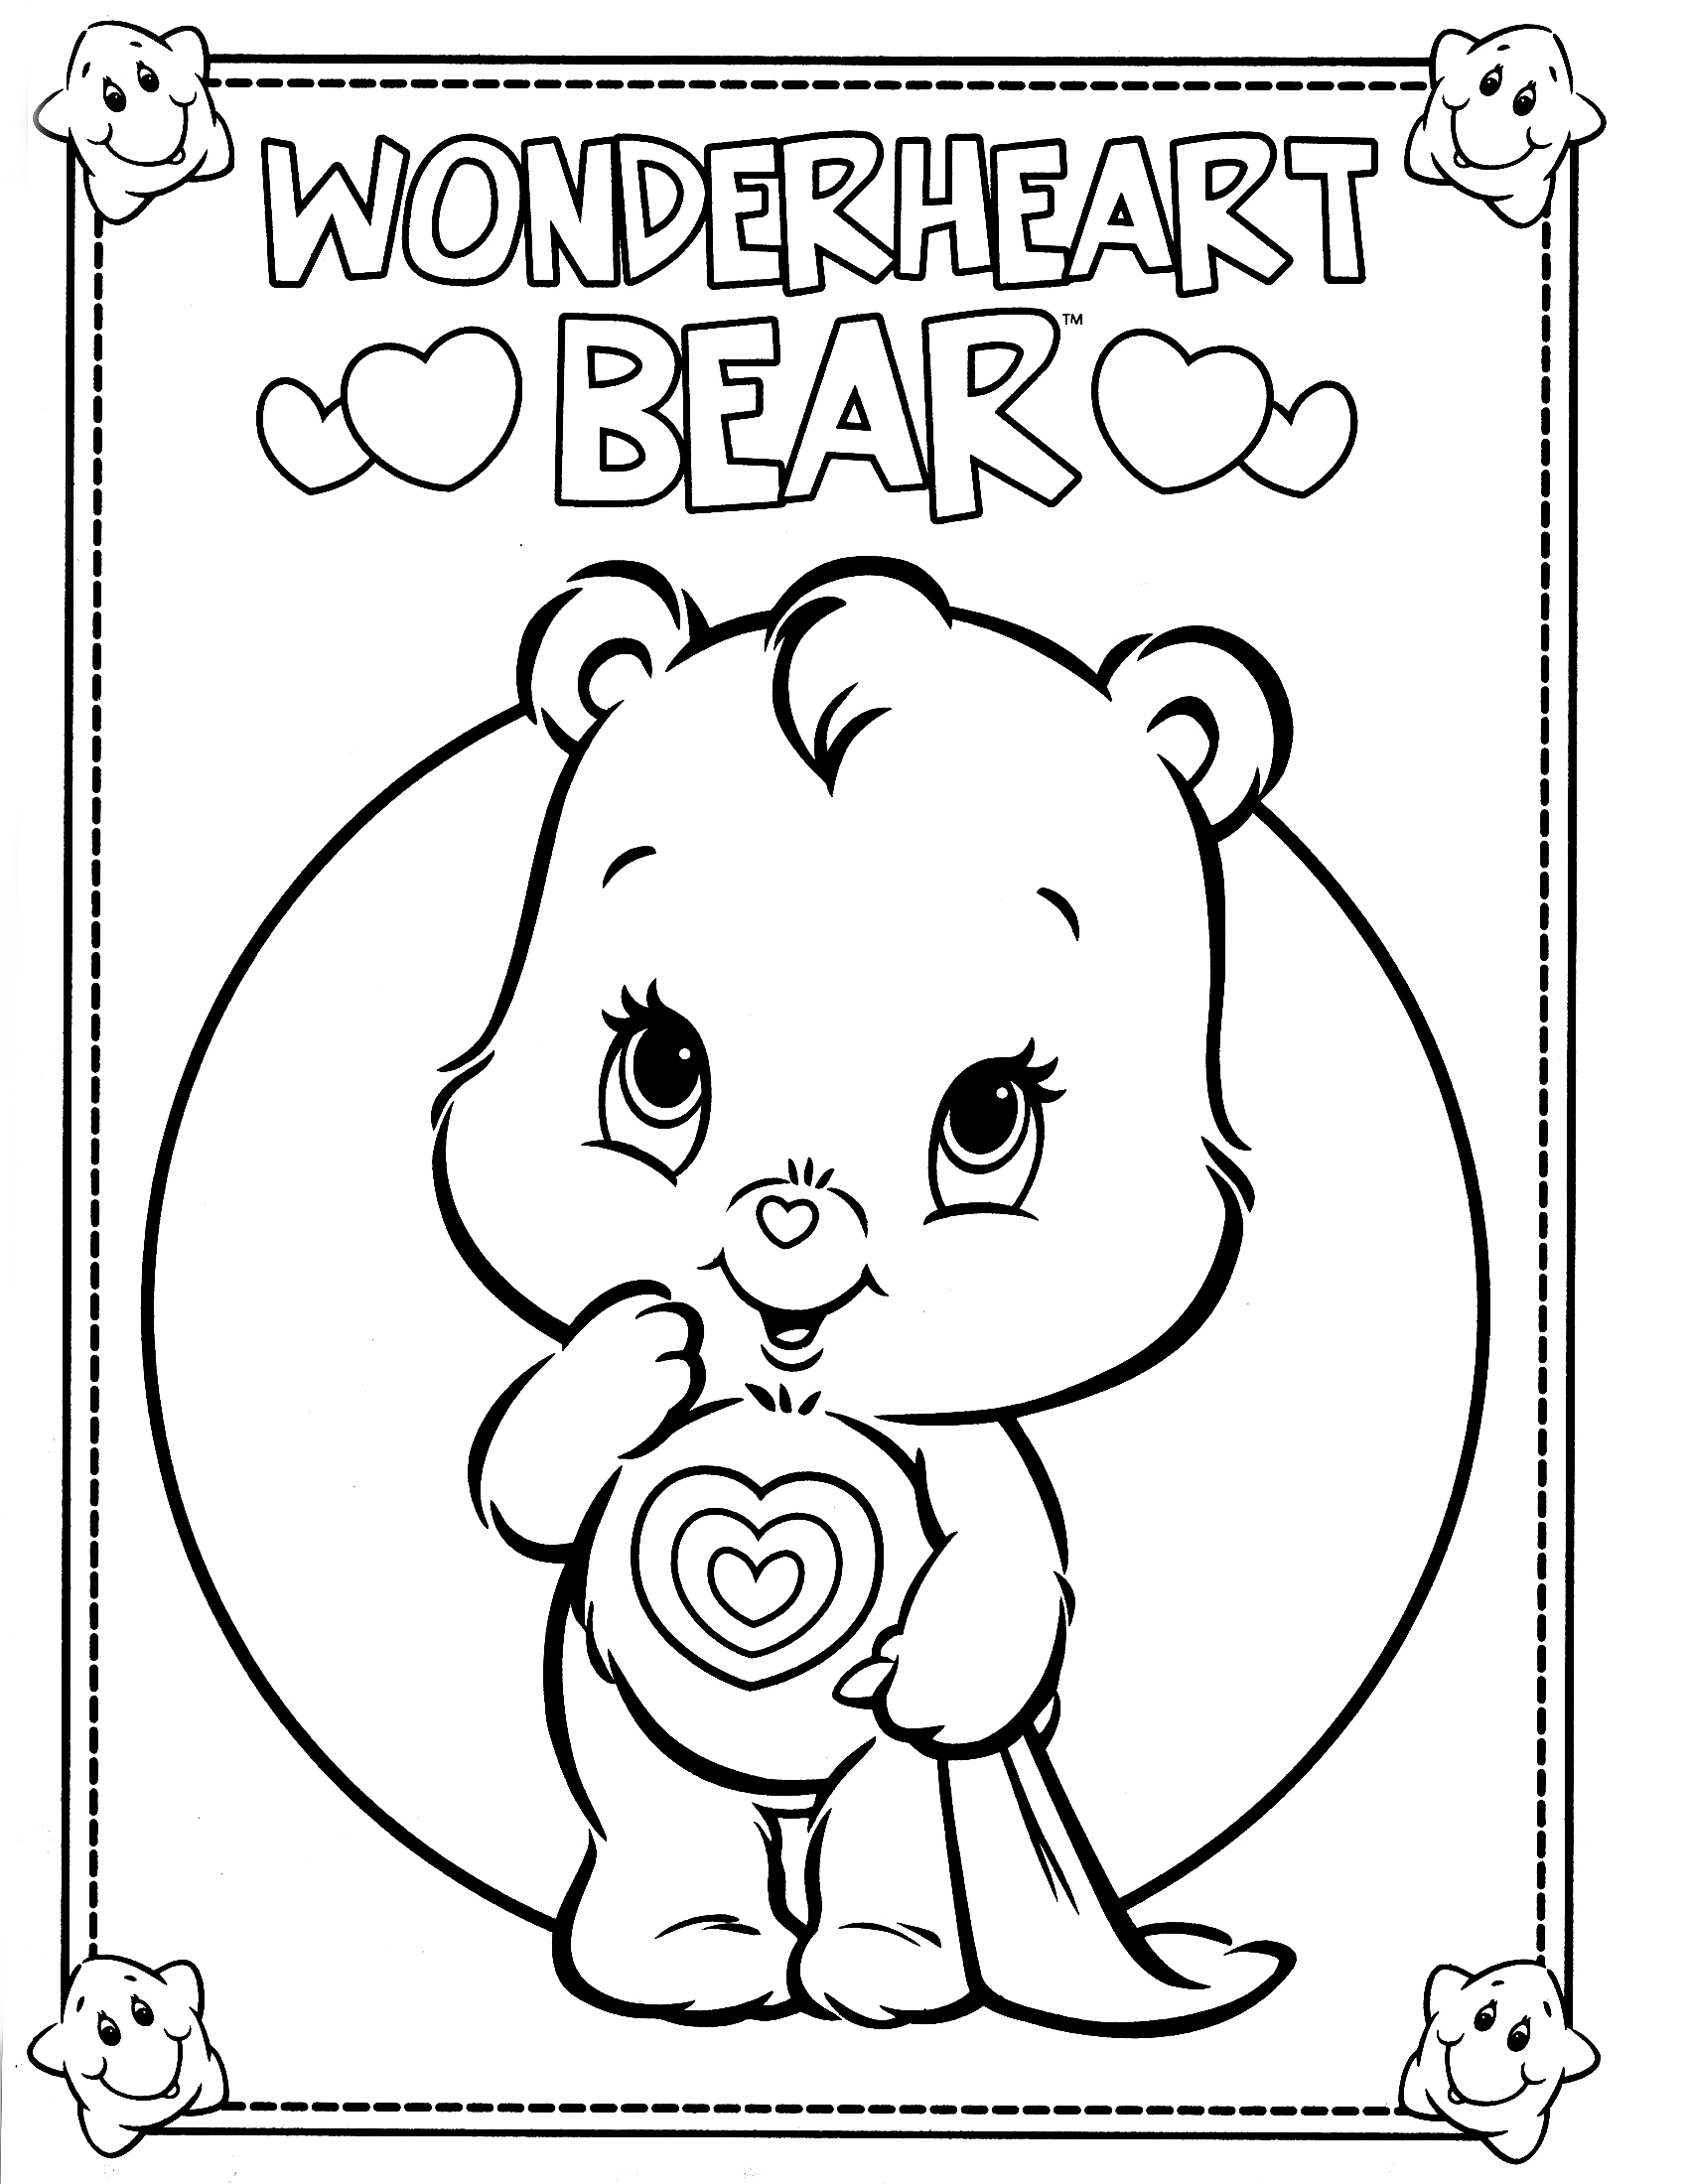 Cheer Bear Coloring Pages Download And Print For Free